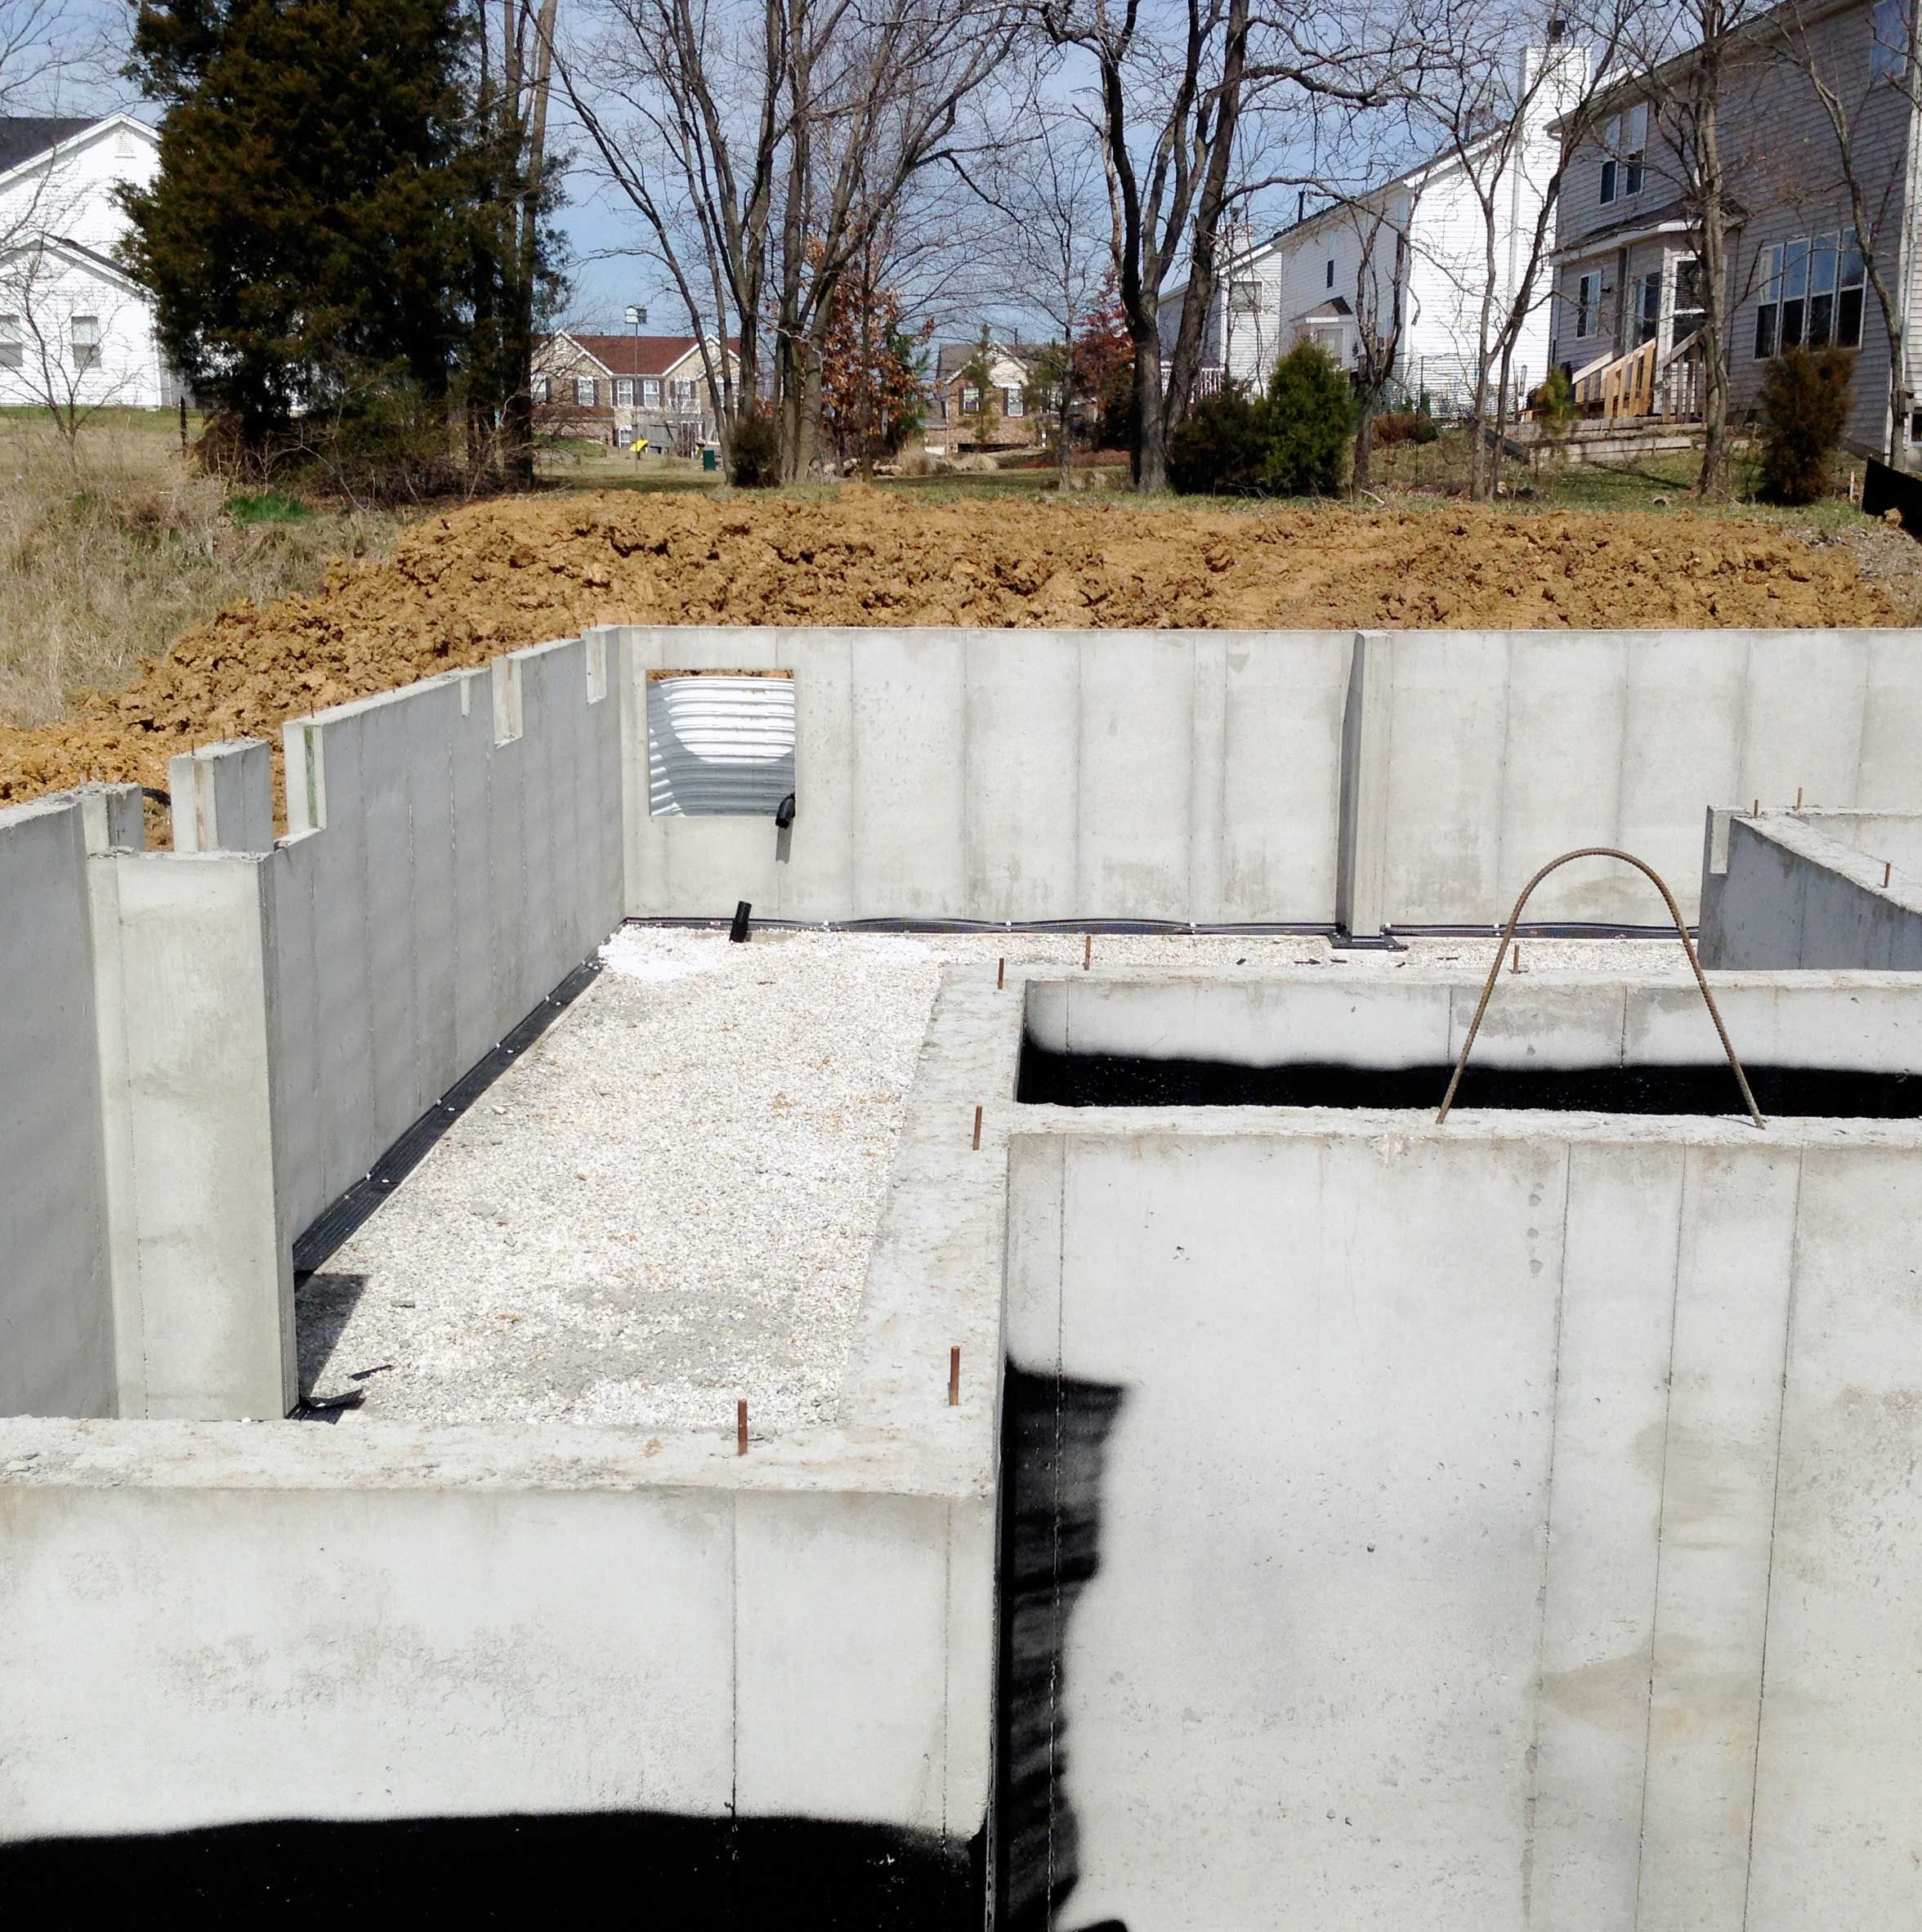 basement foundation design. Learn About Pouring Basement Foundation Walls In New Home Designs. What To Expect With Types And How Much Time They Take Design T